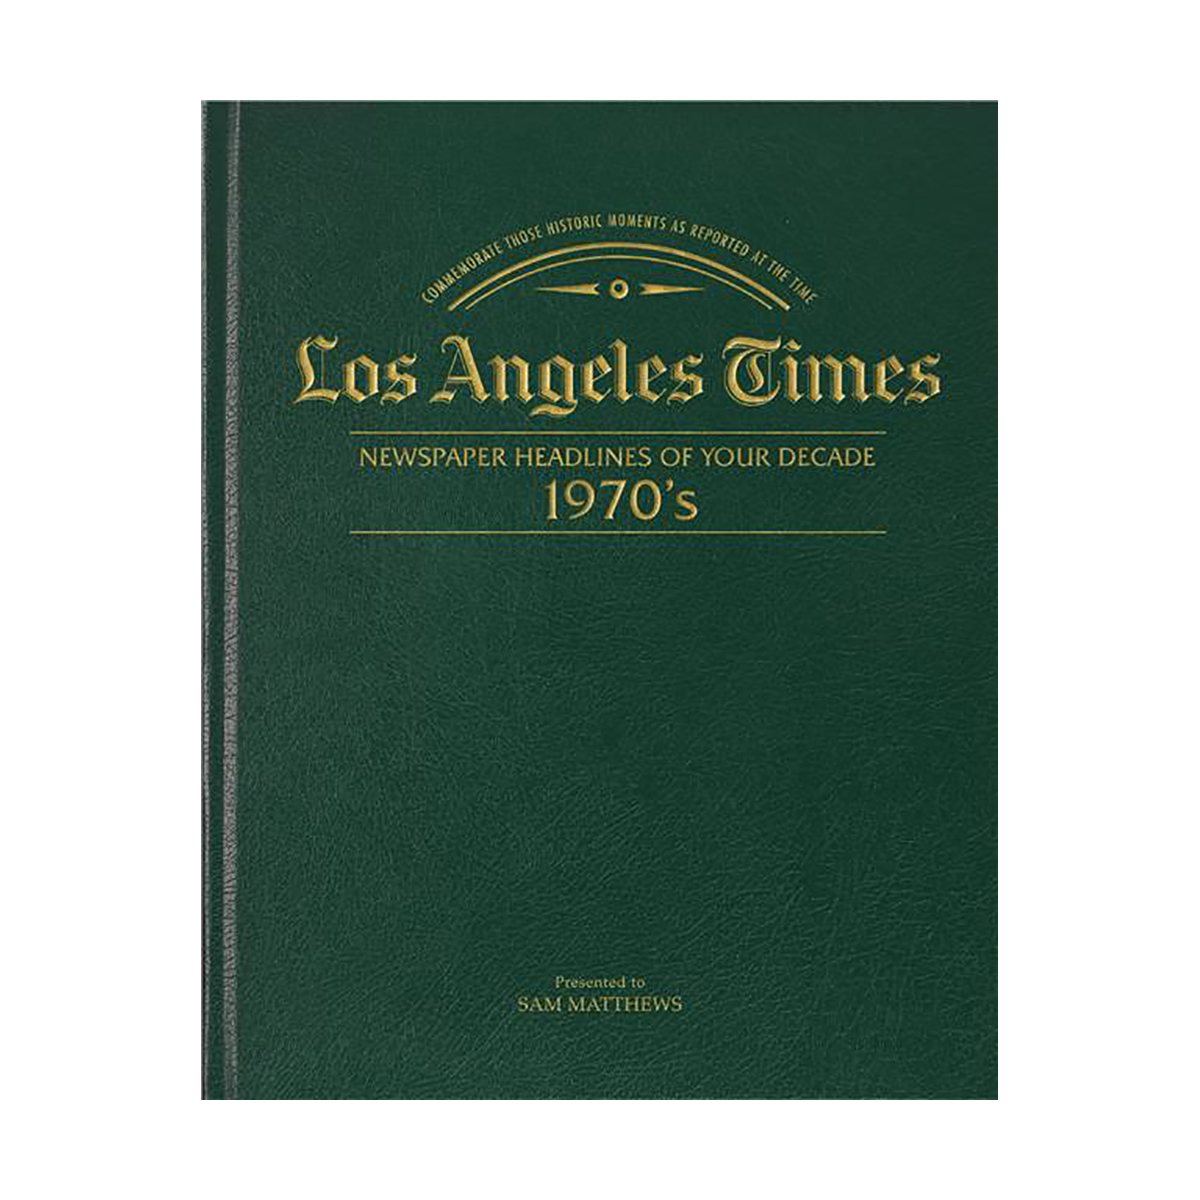 Los Angeles Times 70's Decade Book